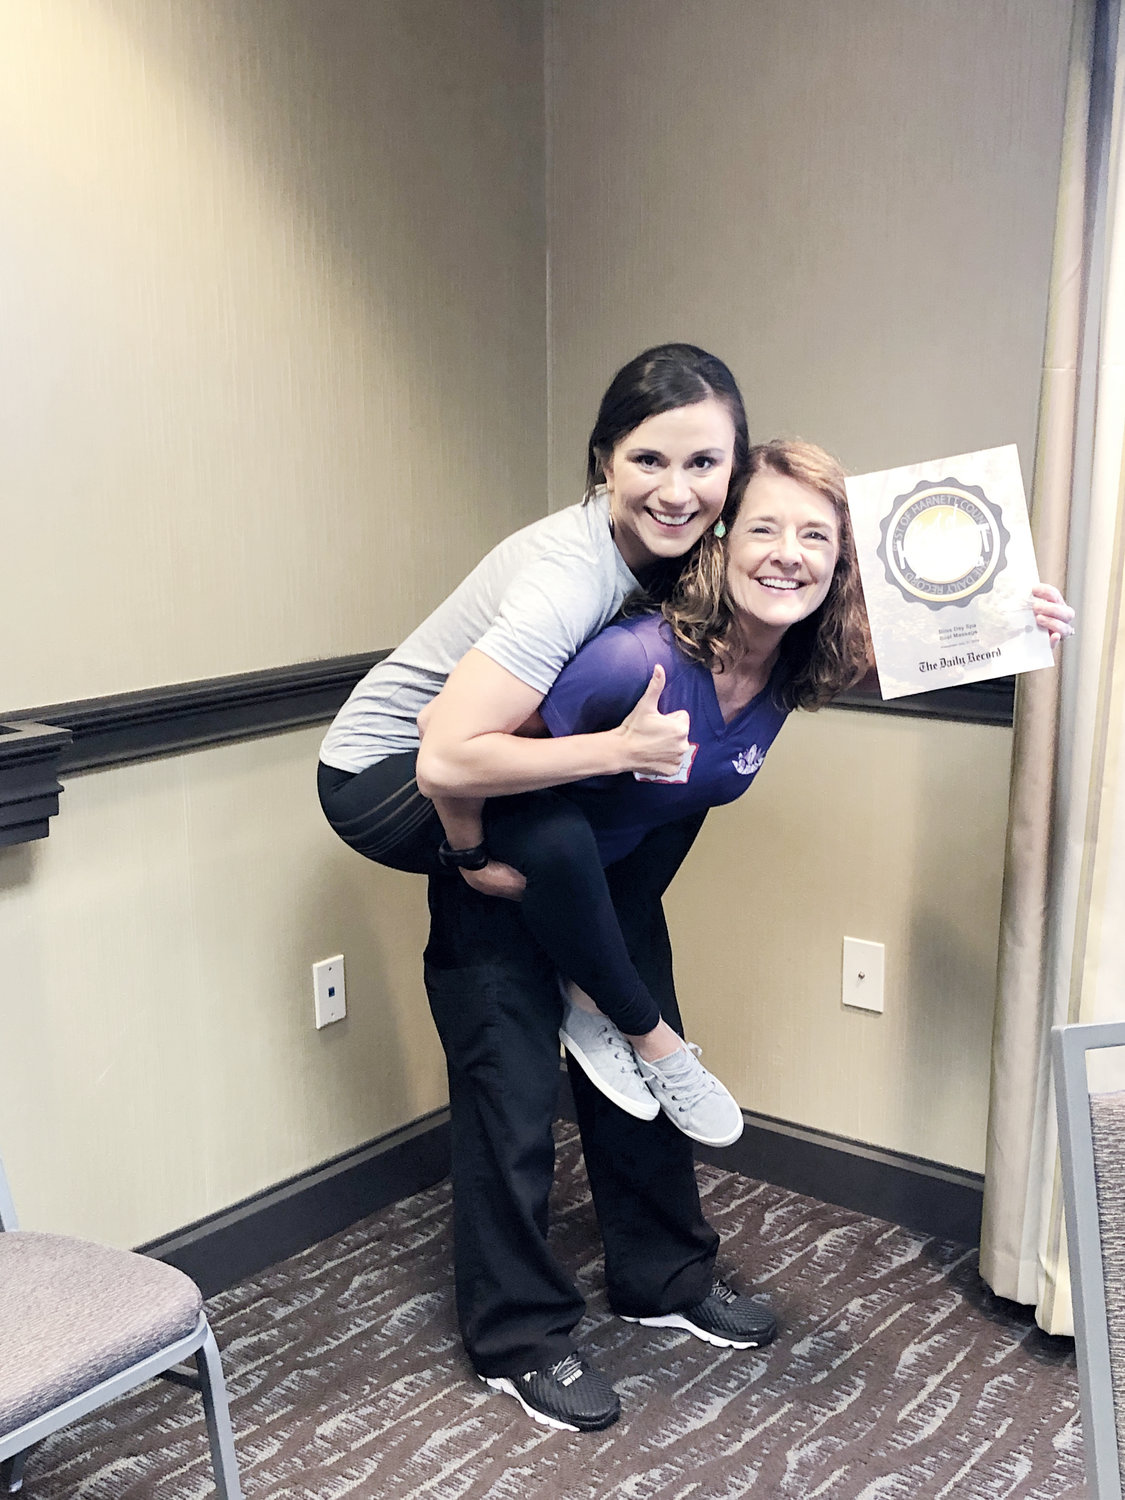 Heather Lane rides on the back of Bliss Day Spa owner Tammy Honeycutt to get their Best of Harnett award. The spa was nominated and voted as the best place to get a massage in the area by The Daily Record readers.